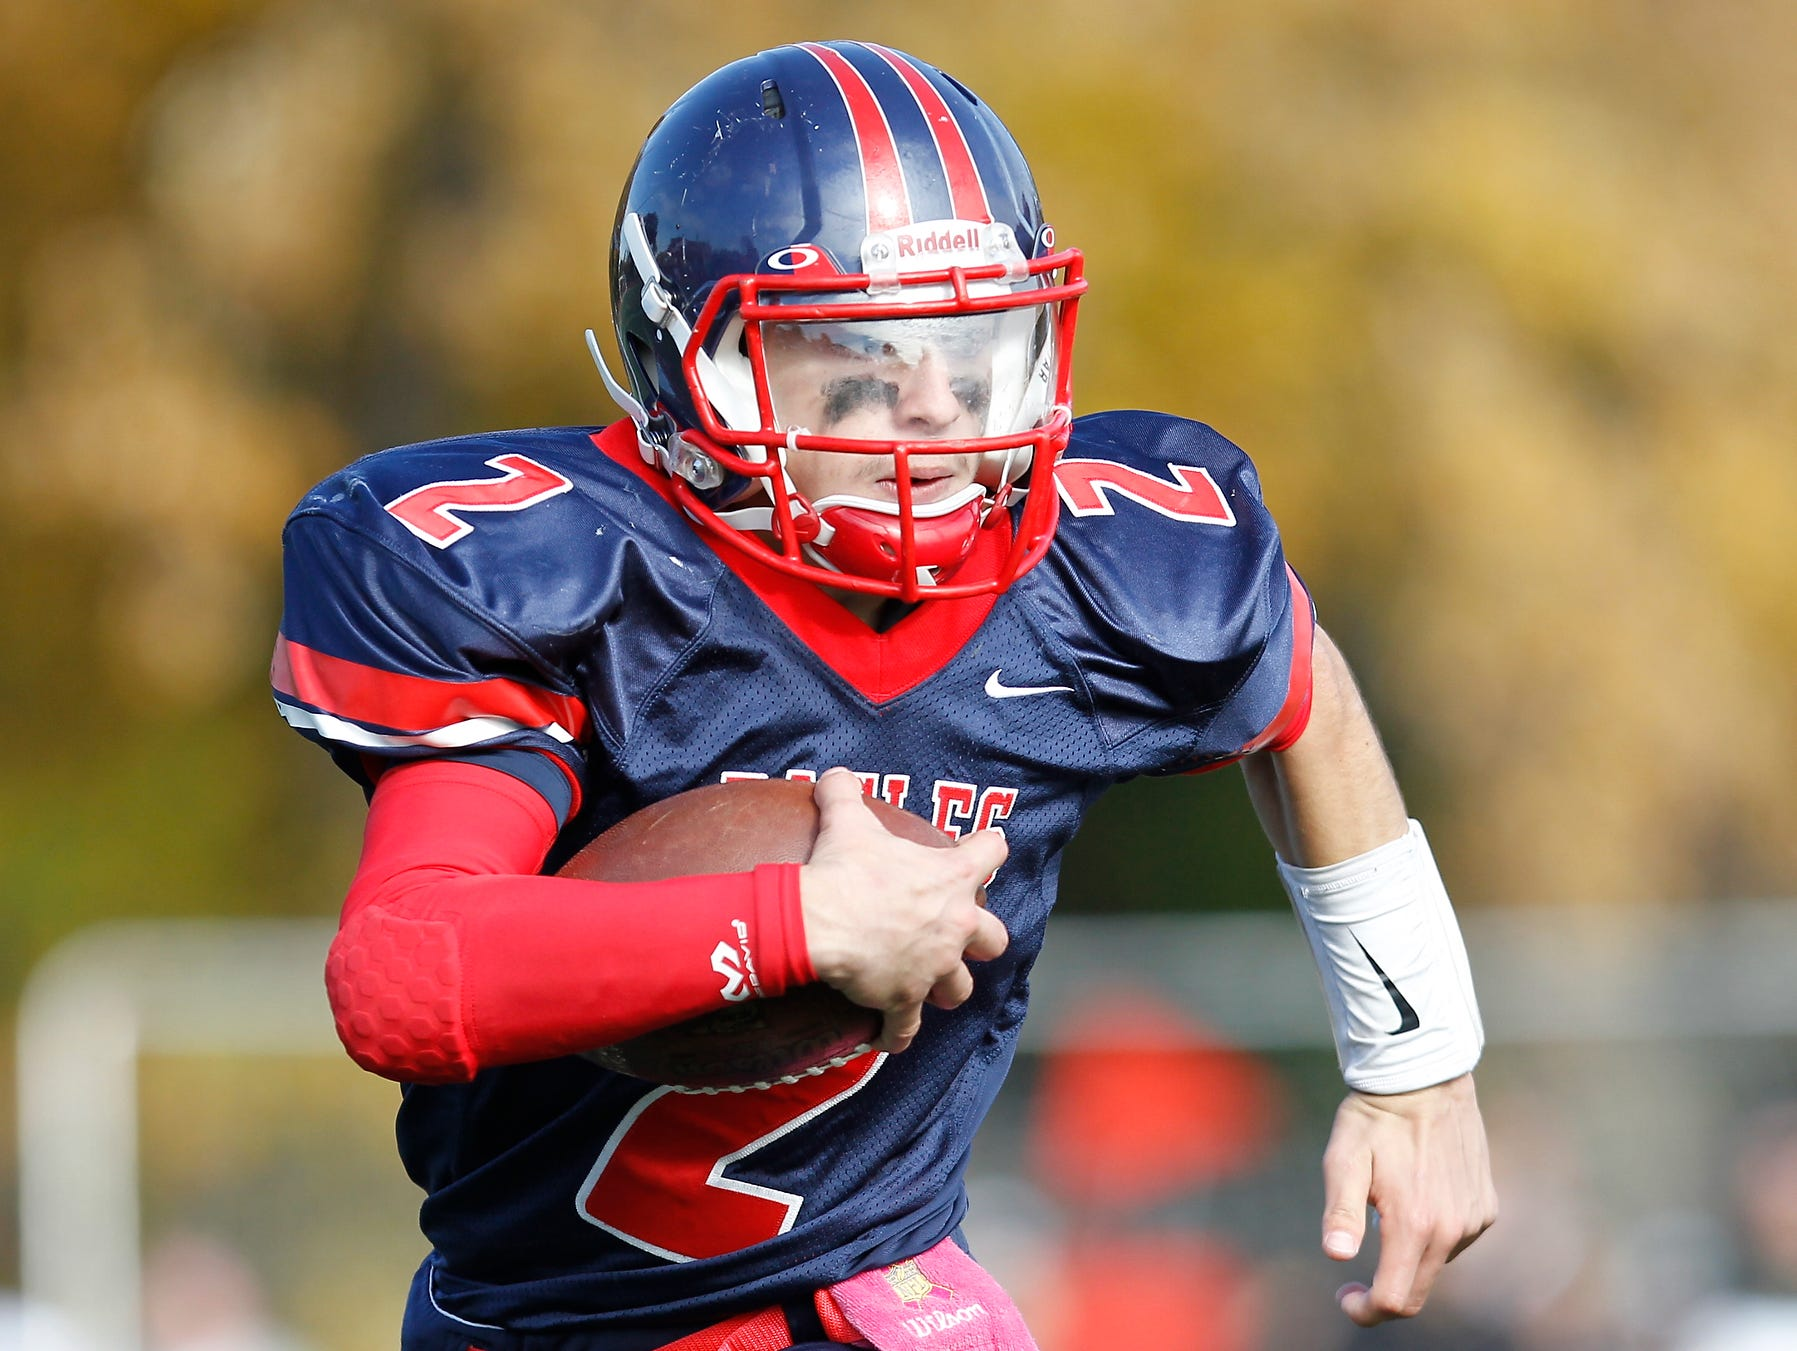 Eastchester quarterback John Arcidiacono (2) runs around the outside during their 19-27 loss to Our Lady of Lourdes High School in the class A semi-final football game in Eastchester on Saturday, Oct. 31, 2015.